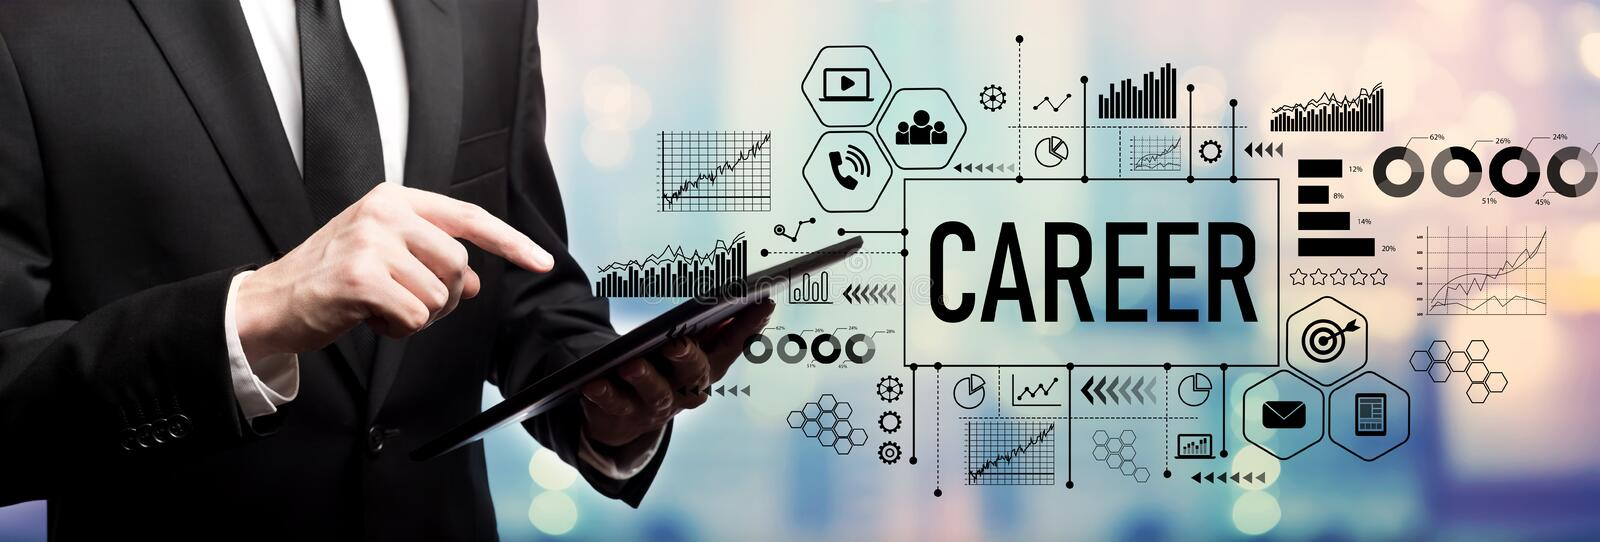 Career concept with businessman stock photo